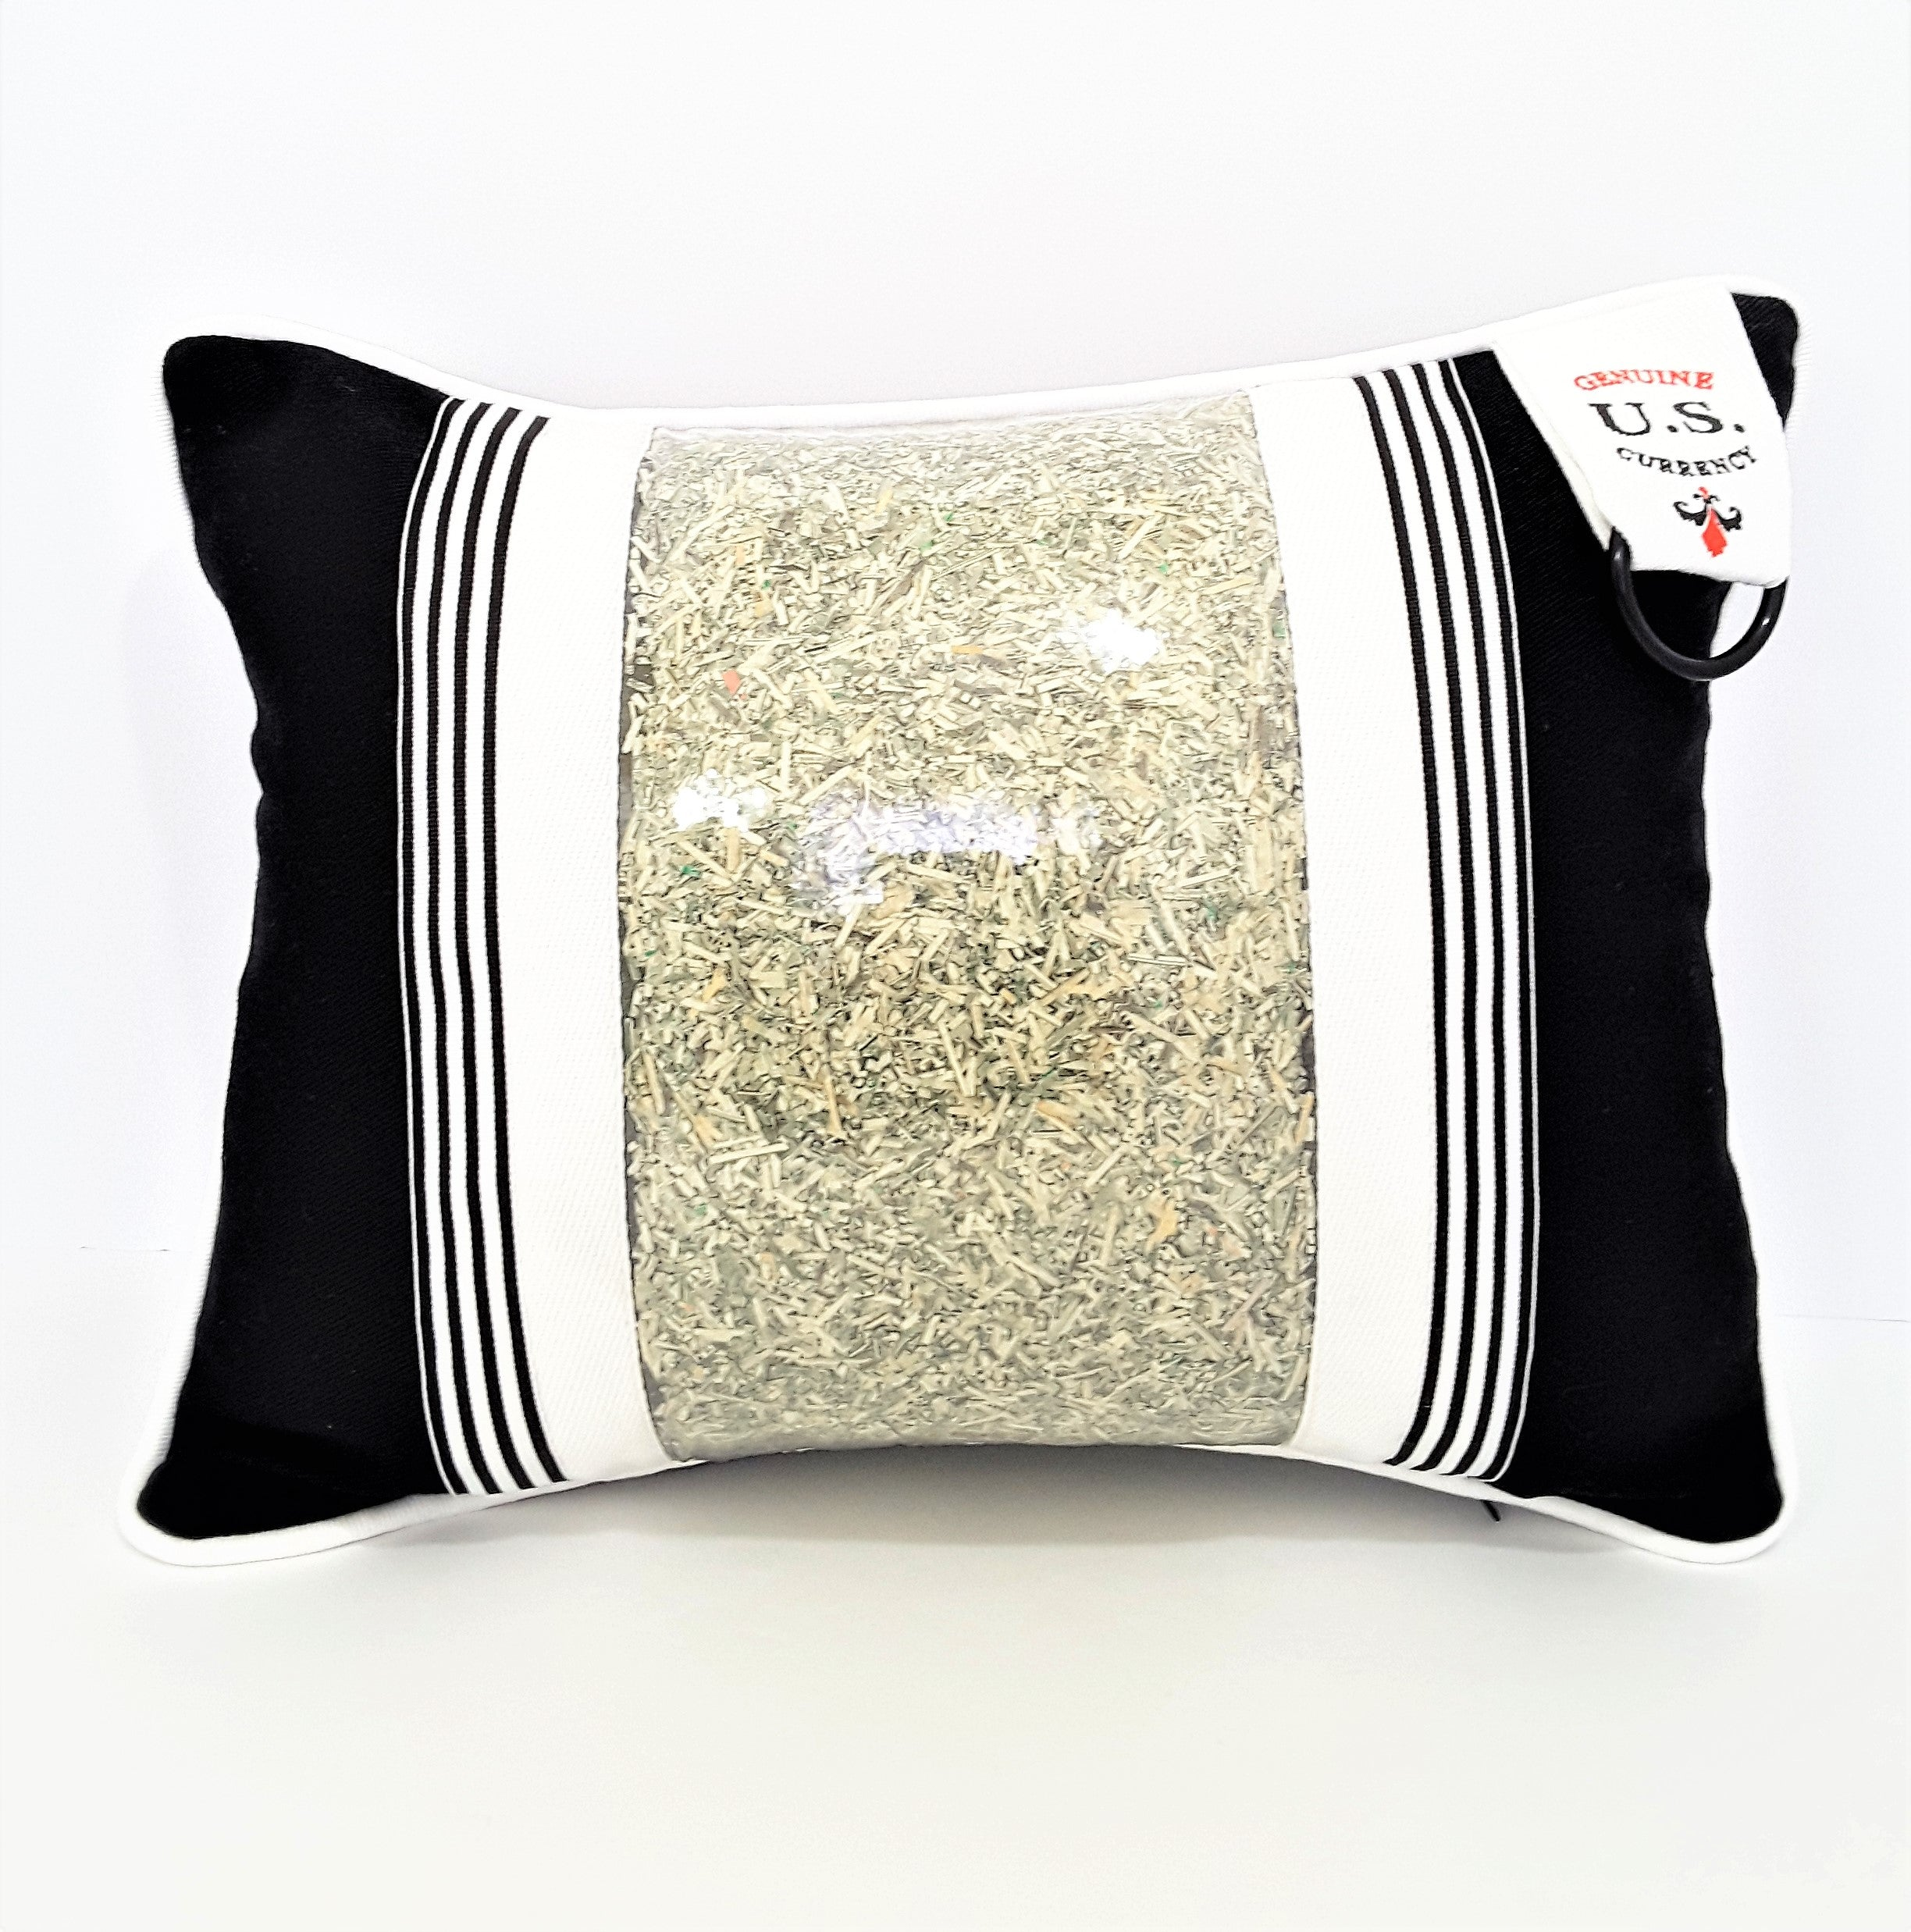 Prosperity Pillow with Genuine U.S. Currency - The Last Word Bish